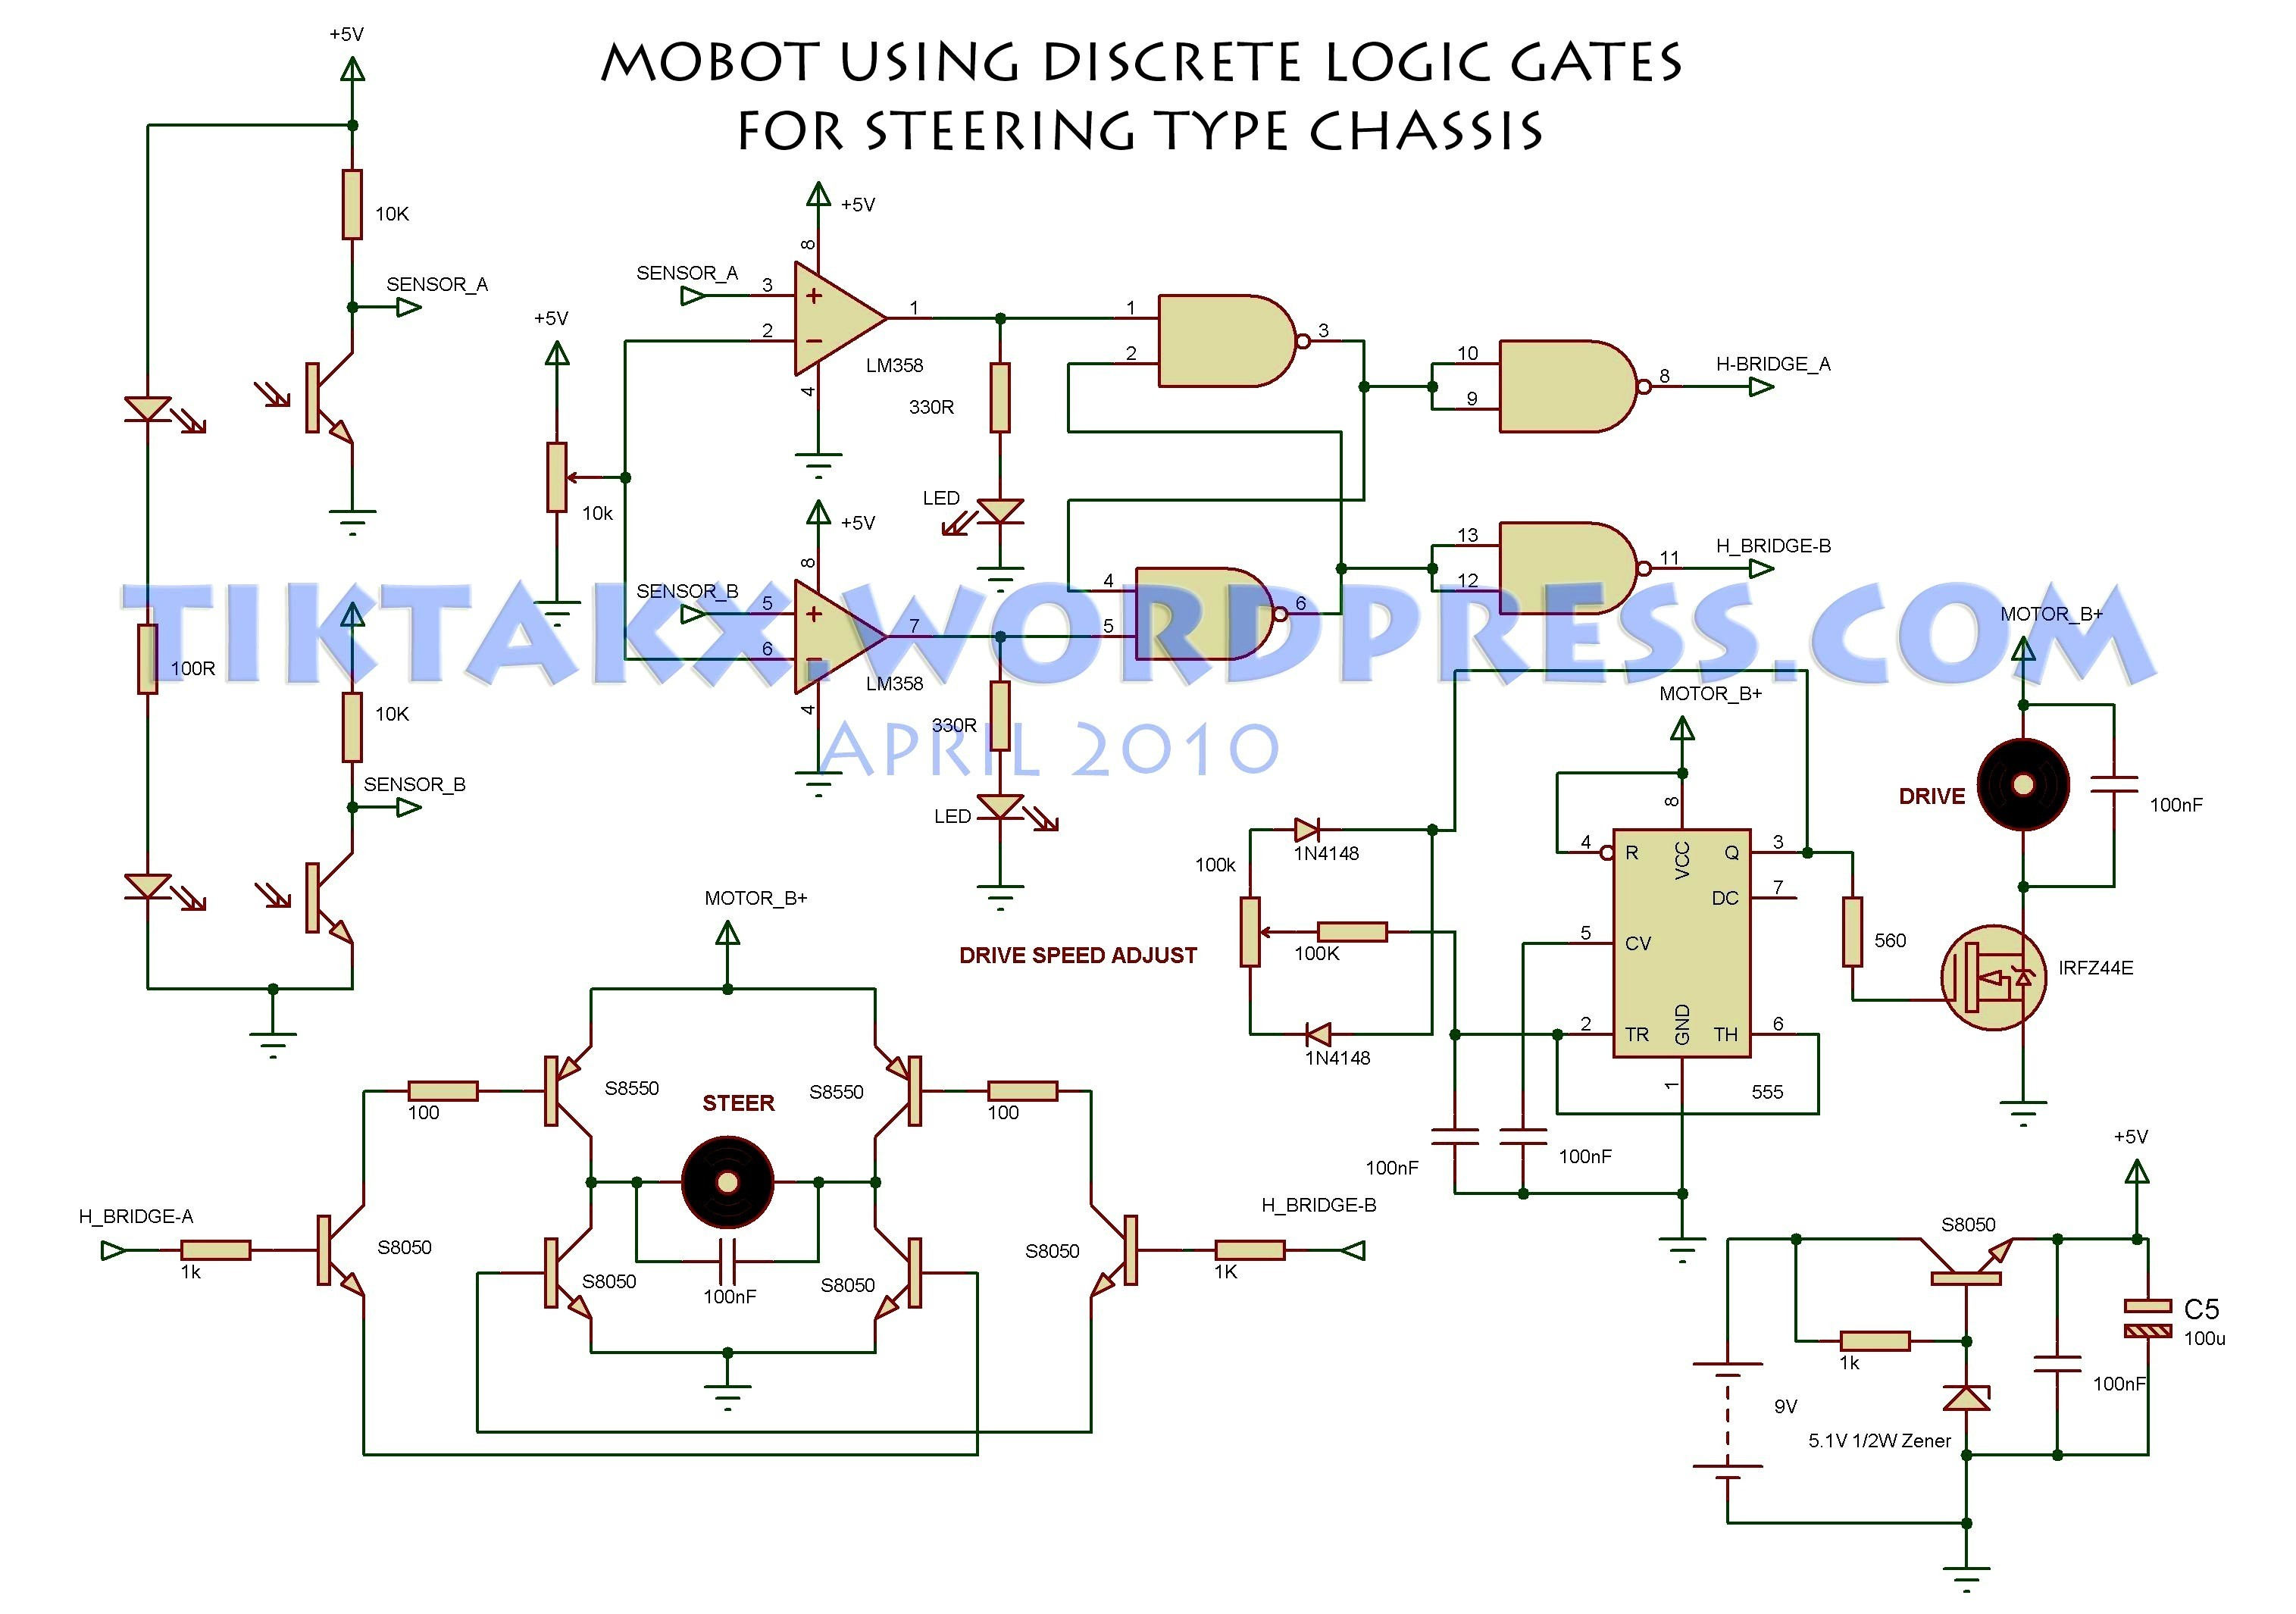 Toy Car Circuit Diagram Electric toy Car Wiring Diagram Of Toy Car Circuit Diagram Trimble 750 Wiring Diagram Valid Wiring Diagram for Car Radio Fresh